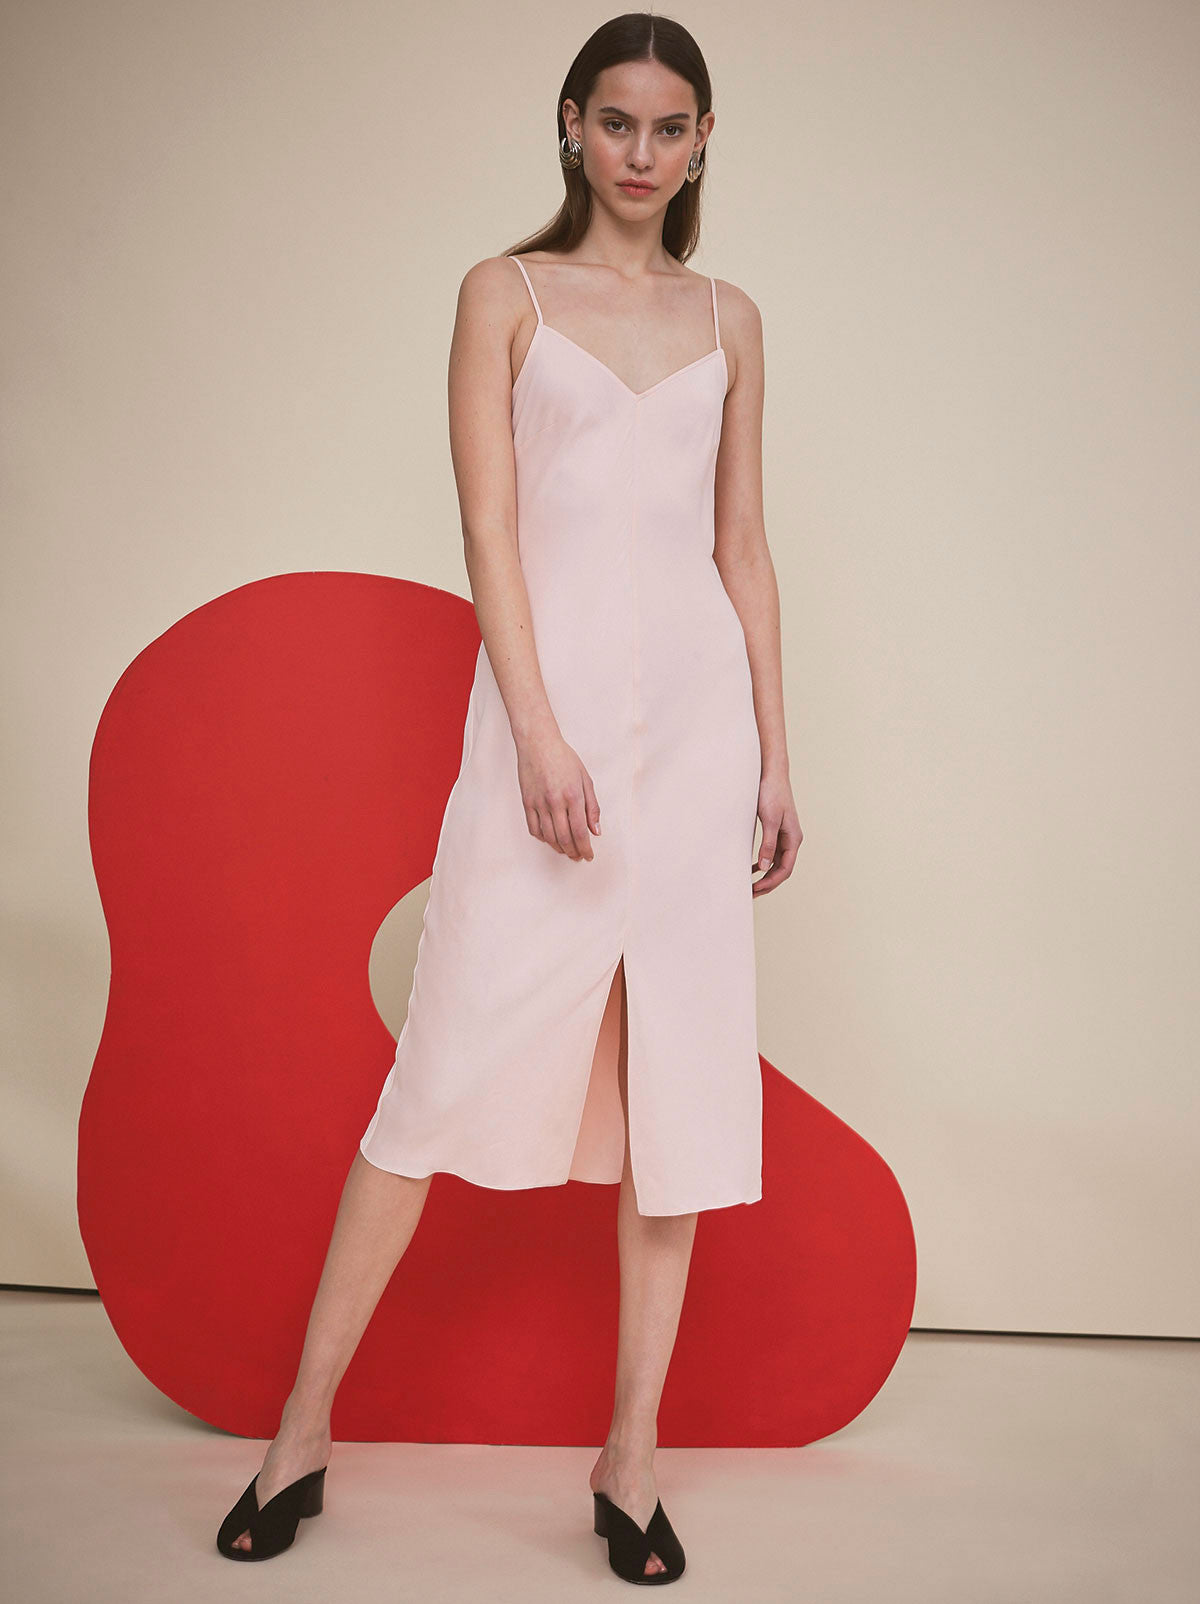 Ondine Pink Slip Dress